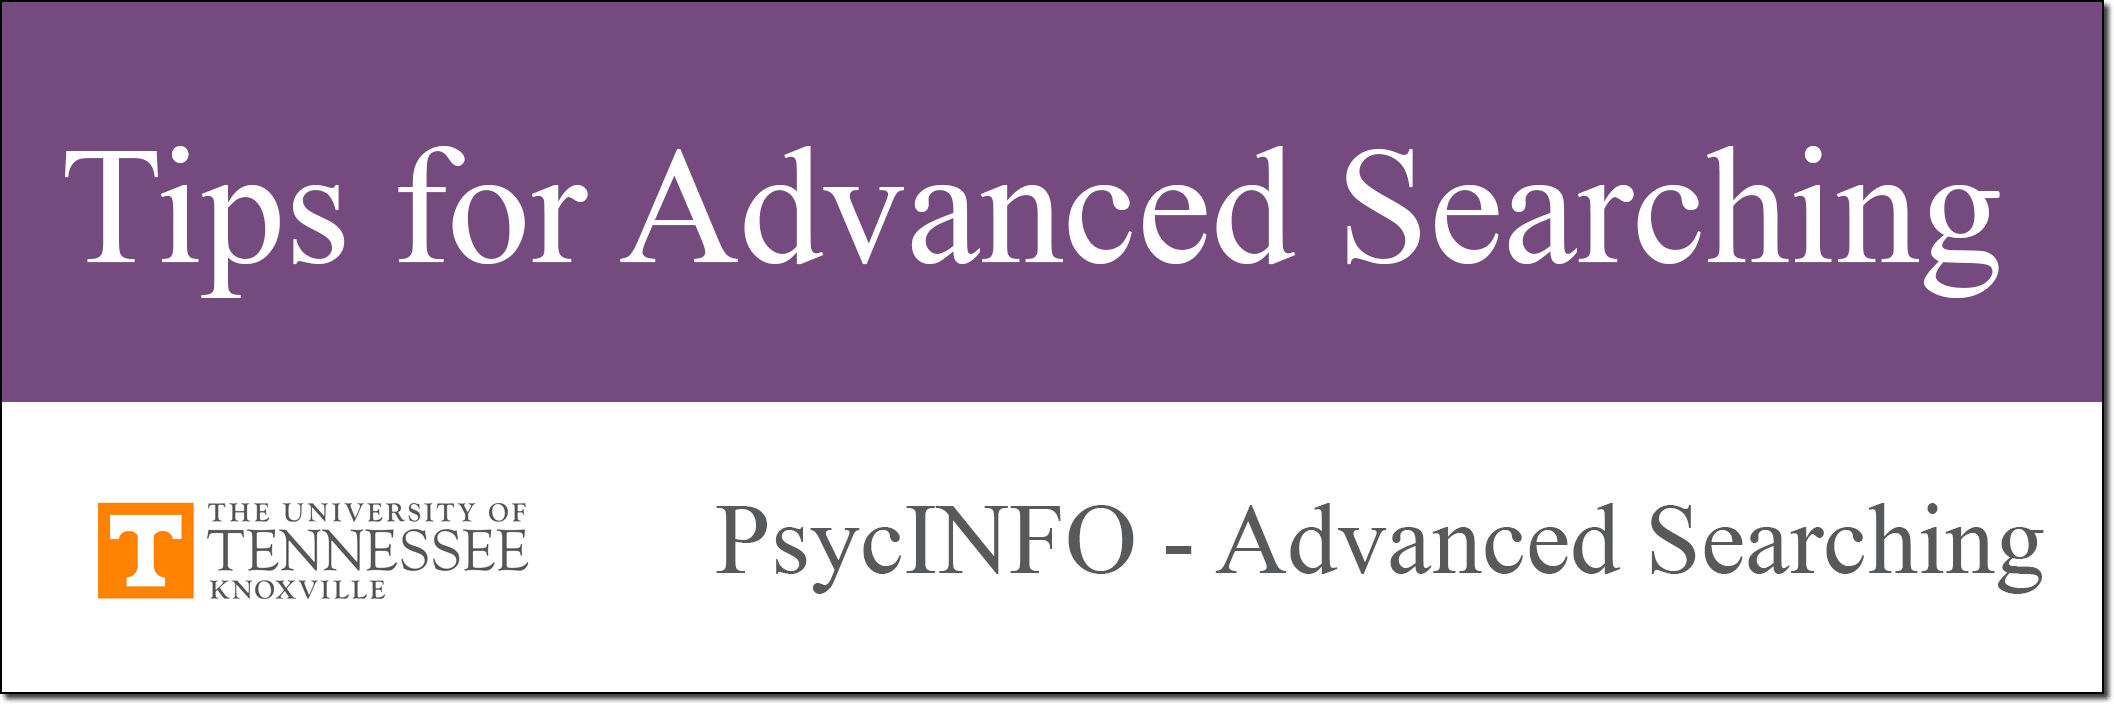 PsycINFO Tutorial Tips for Advanced Searching link.